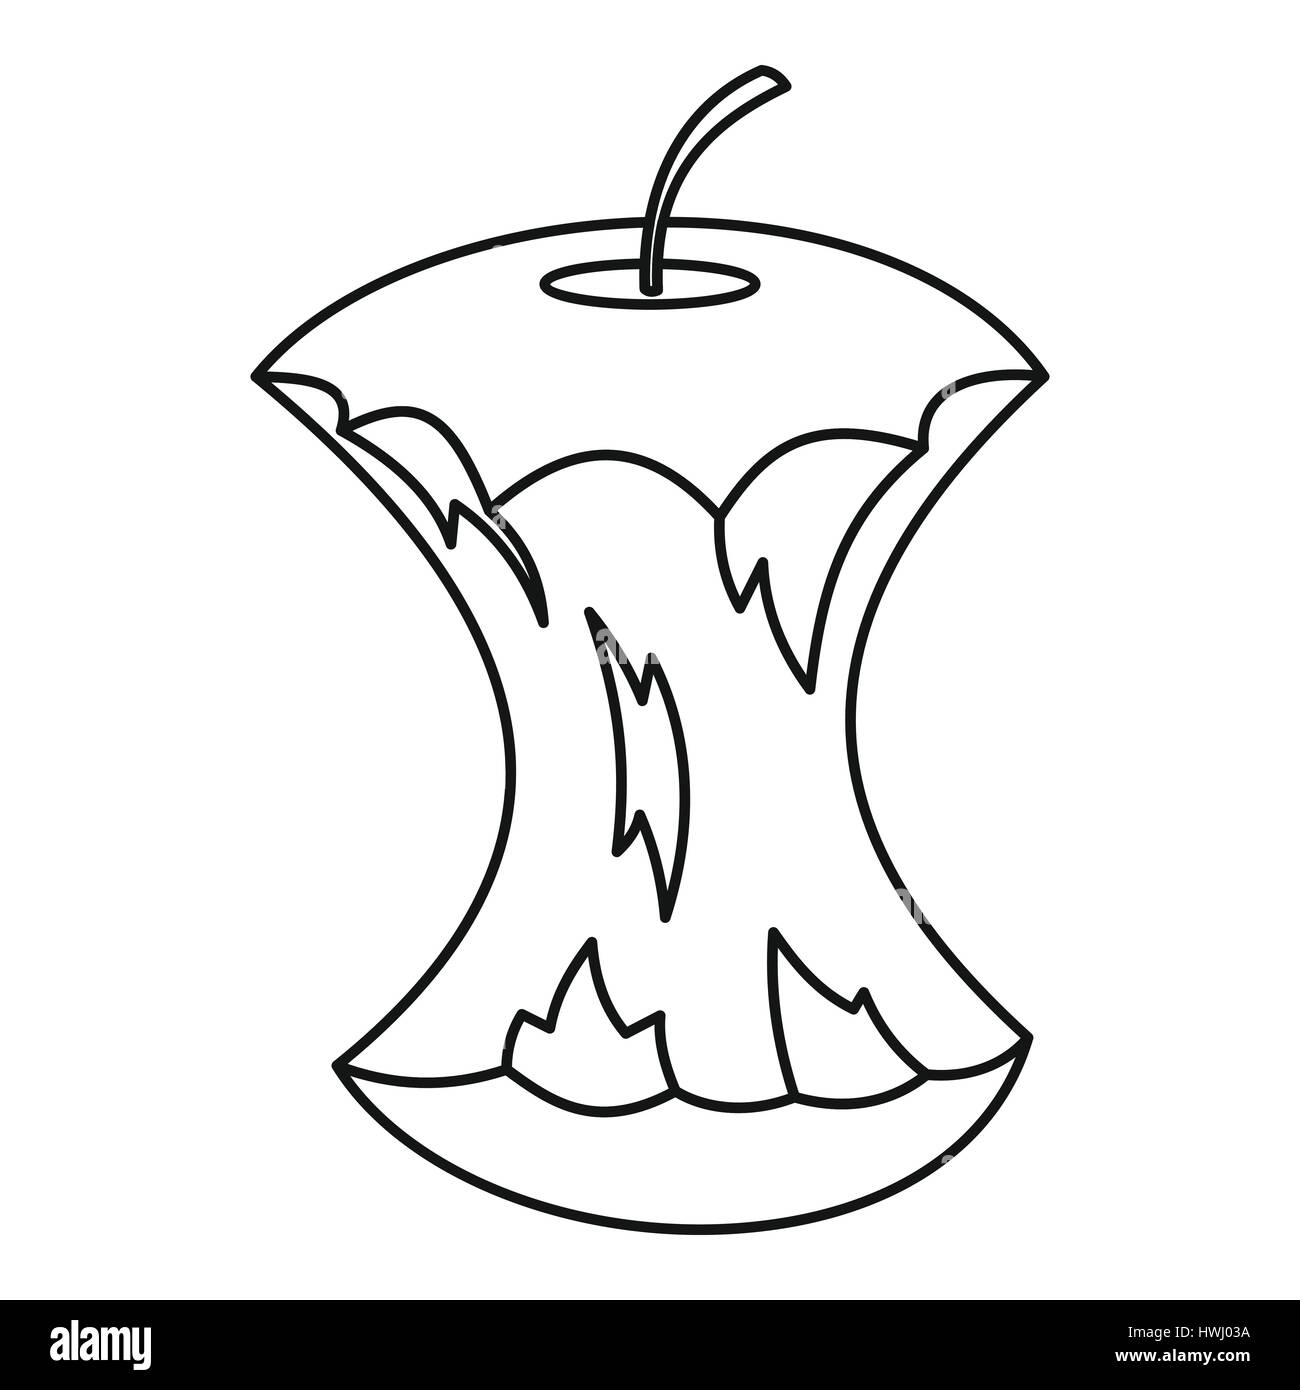 Apple core icon, outline style - Stock Image